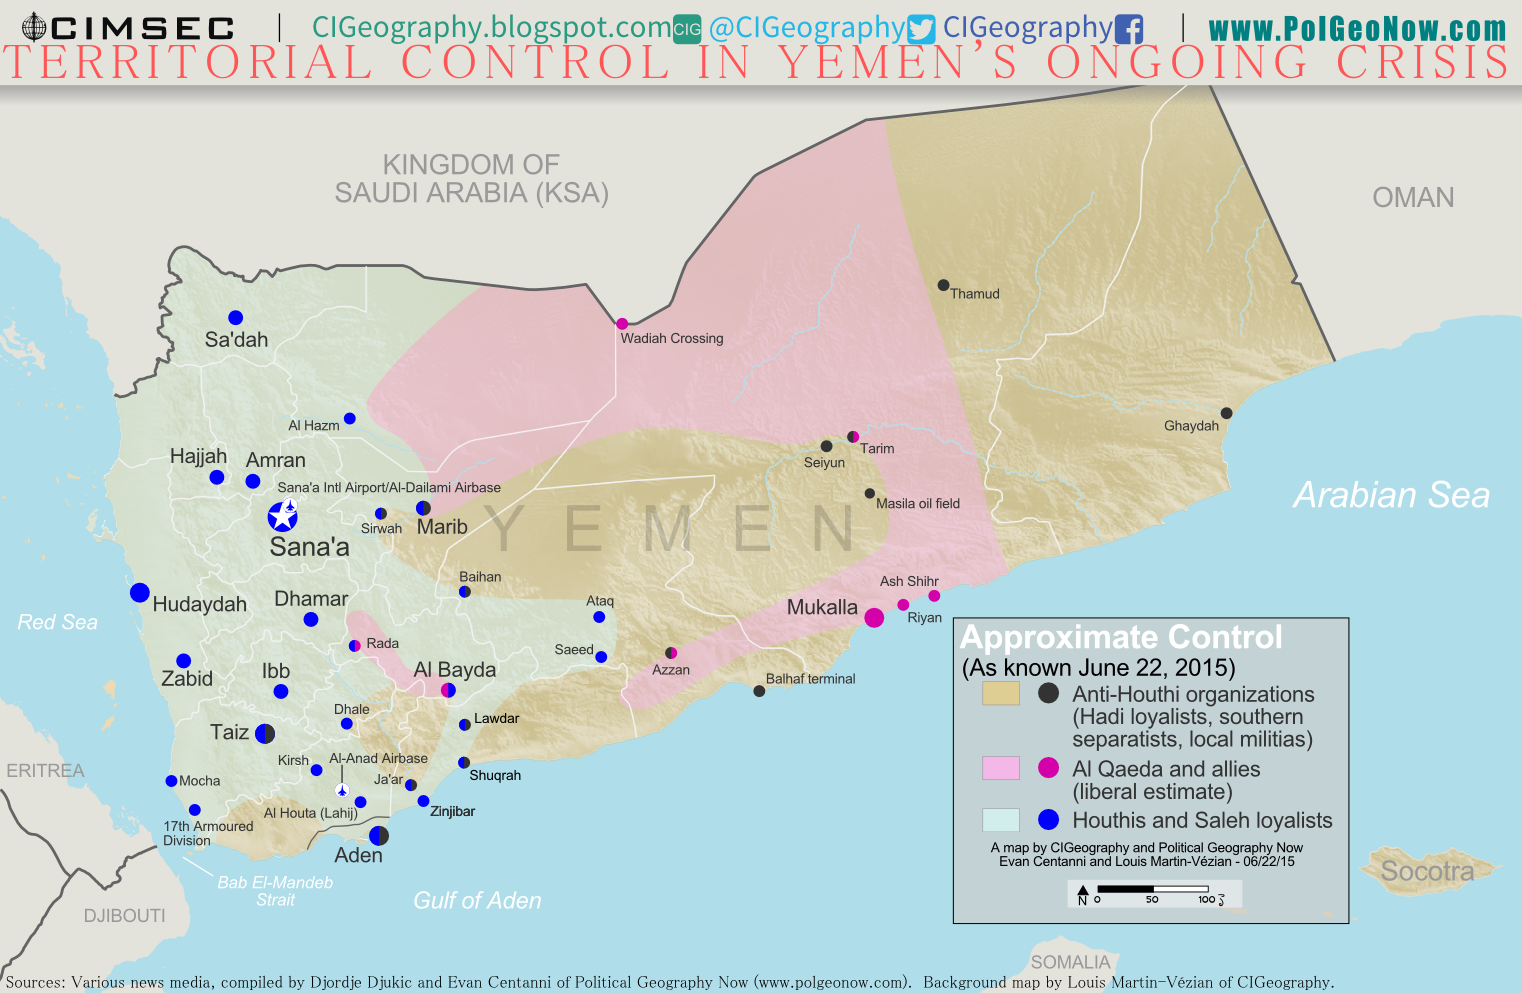 Map of territorial control in Yemen as of June 22, 2015, about two months into Saudi Arabia's military intervention, including territory held by the Houthi rebels and former president Saleh's forces, president-in-exile Hadi and the Southern Movement, and Al Qaeda in the Arabian Peninsula (AQAP).